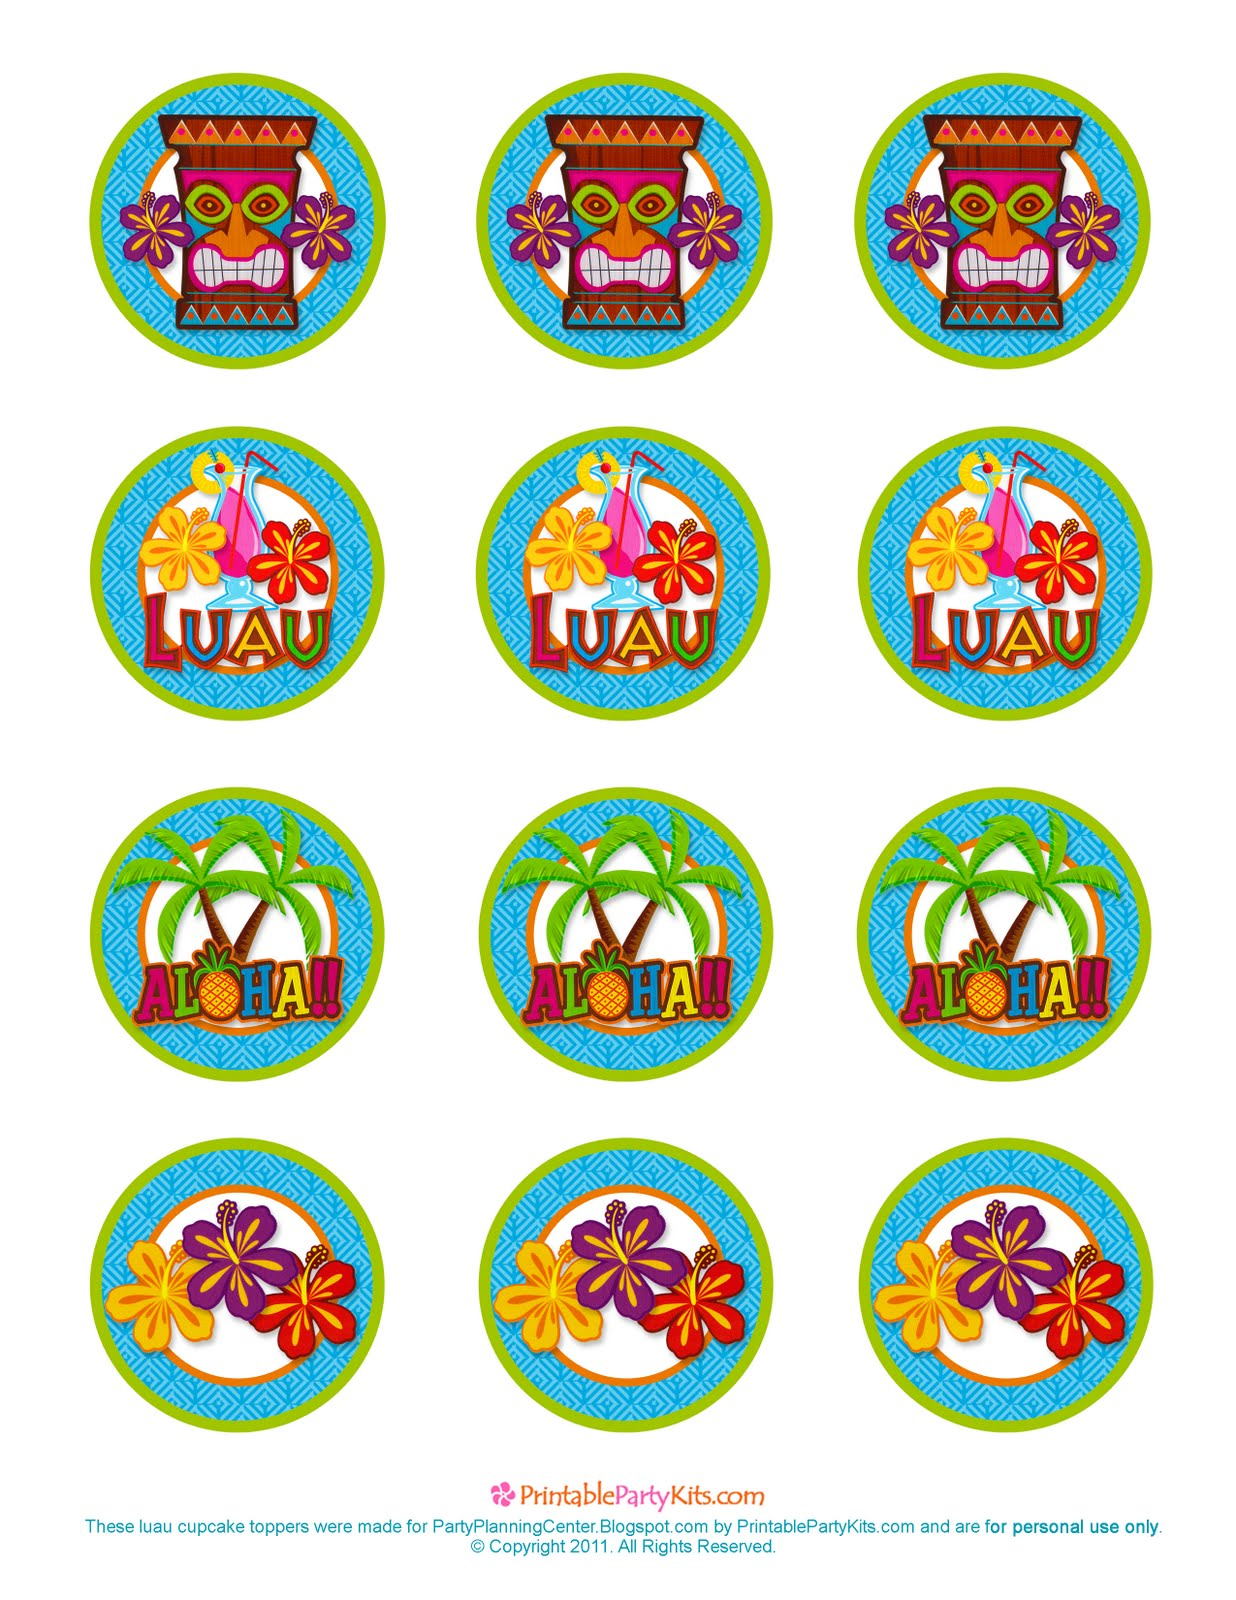 5 Images of Luau Cupcake Toppers Free Printable